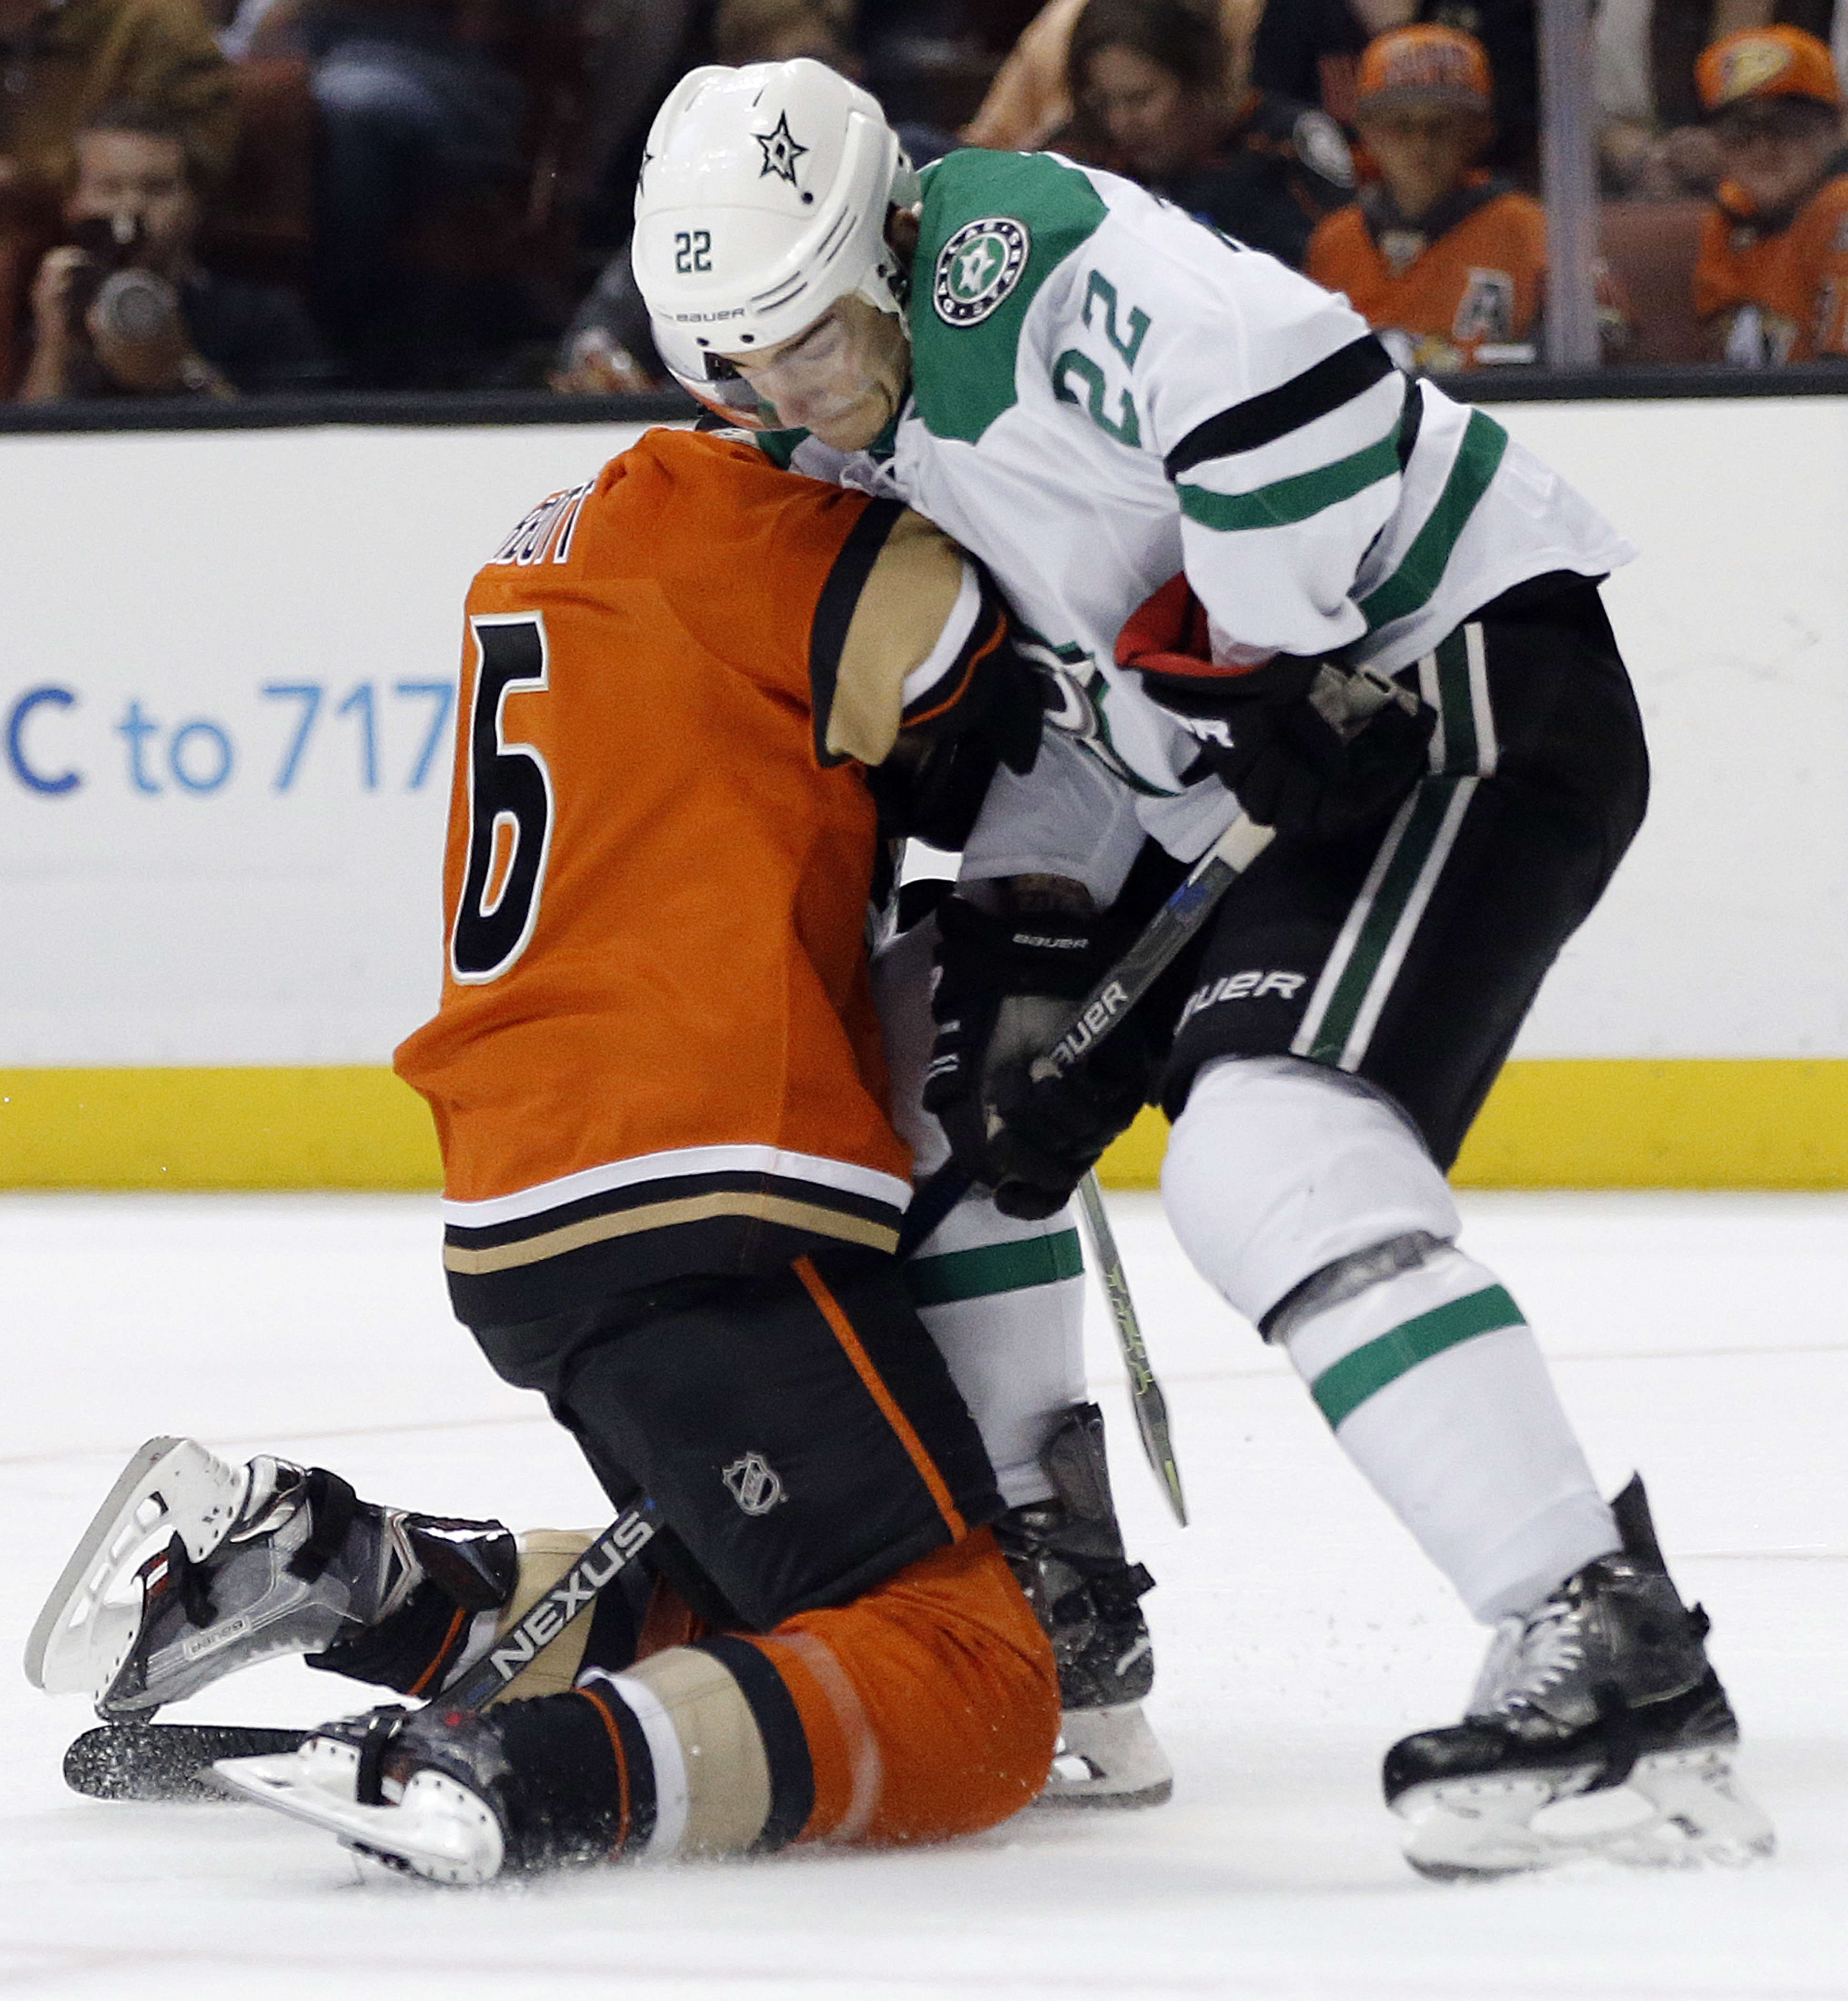 Dallas Stars center Colton Sceviour, right, collides into Anaheim Ducks left wing Ryan Garbutt, left, going for the puck during the second period of an NHL hockey game in Anaheim, Calif., Sunday, April 3, 2016. (AP Photo/Alex Gallardo)